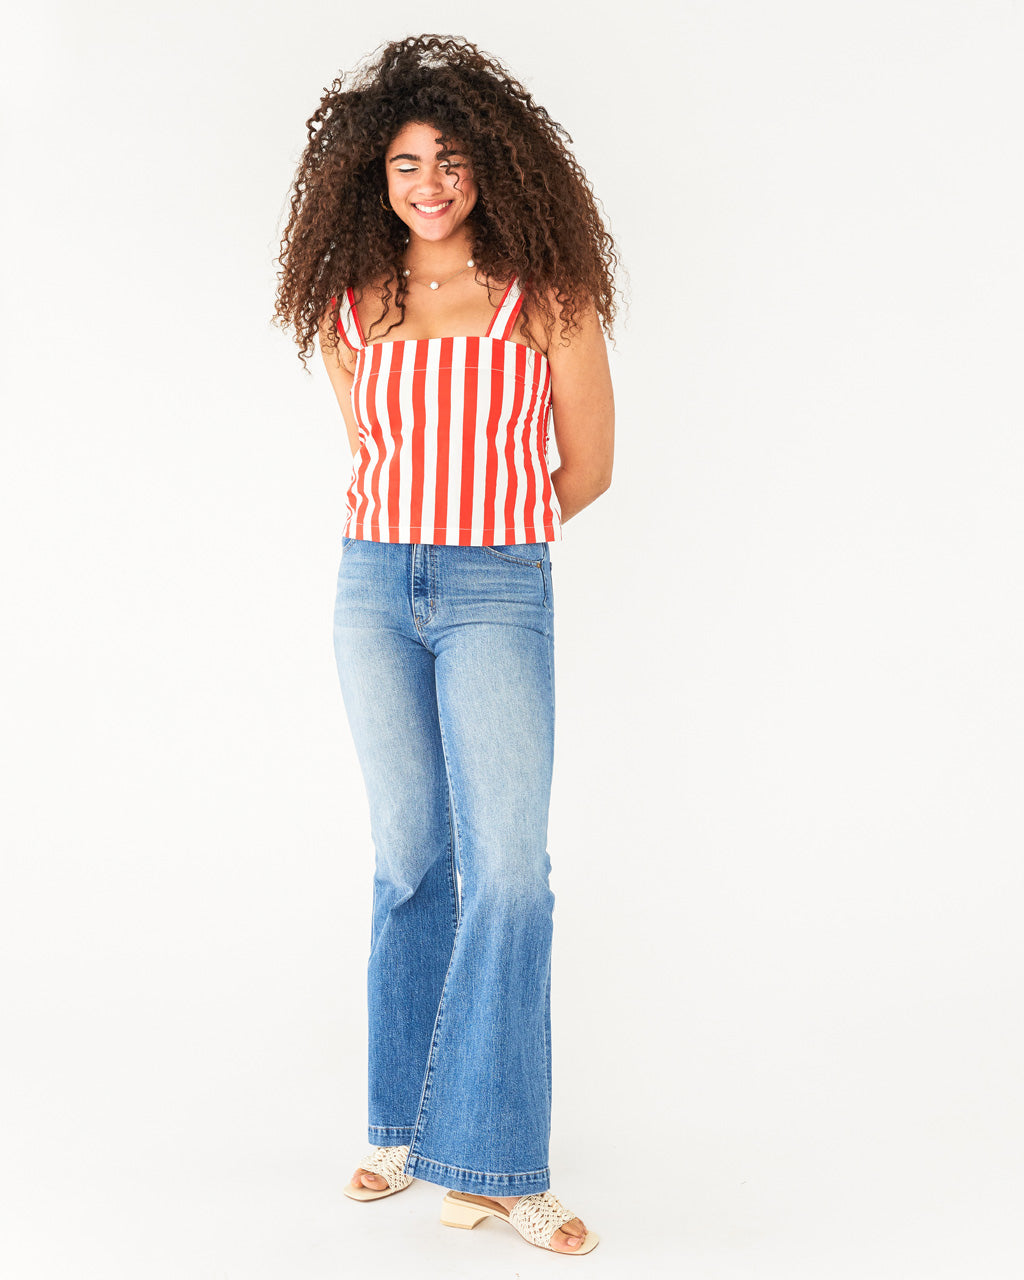 red and white stripe tank shown on model paired with jeans